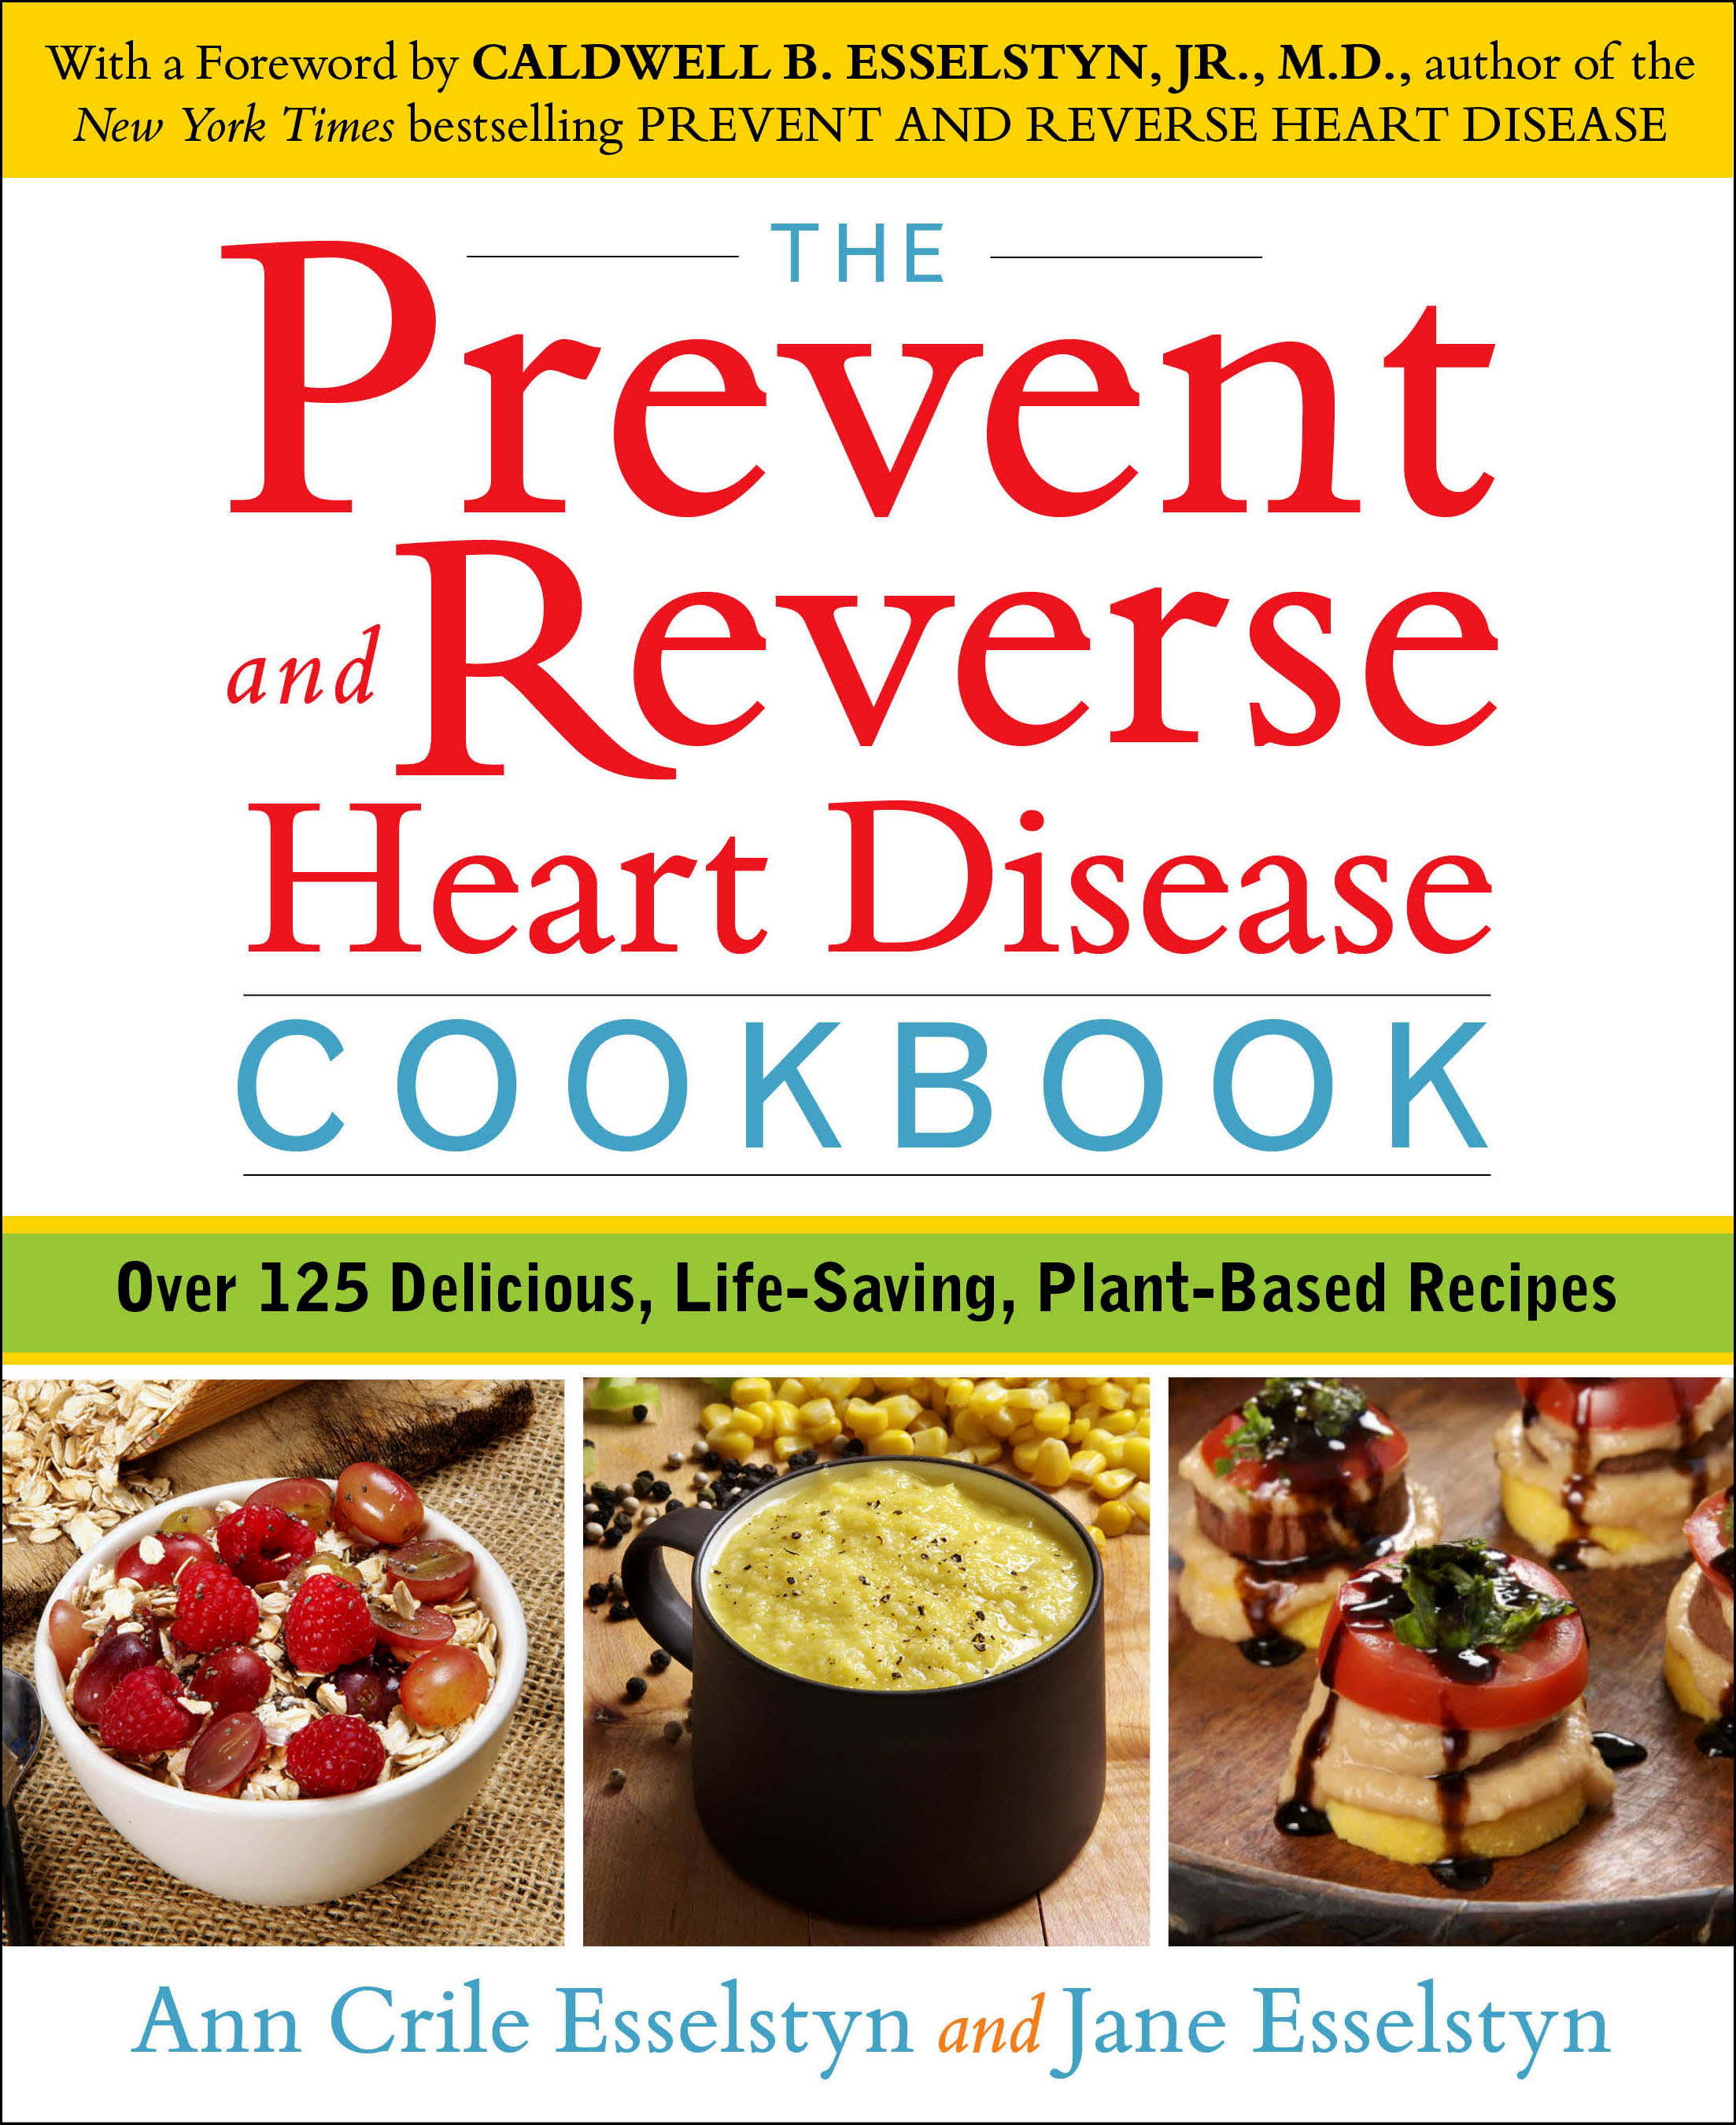 prevent-heart-disease-cookbook.jpg